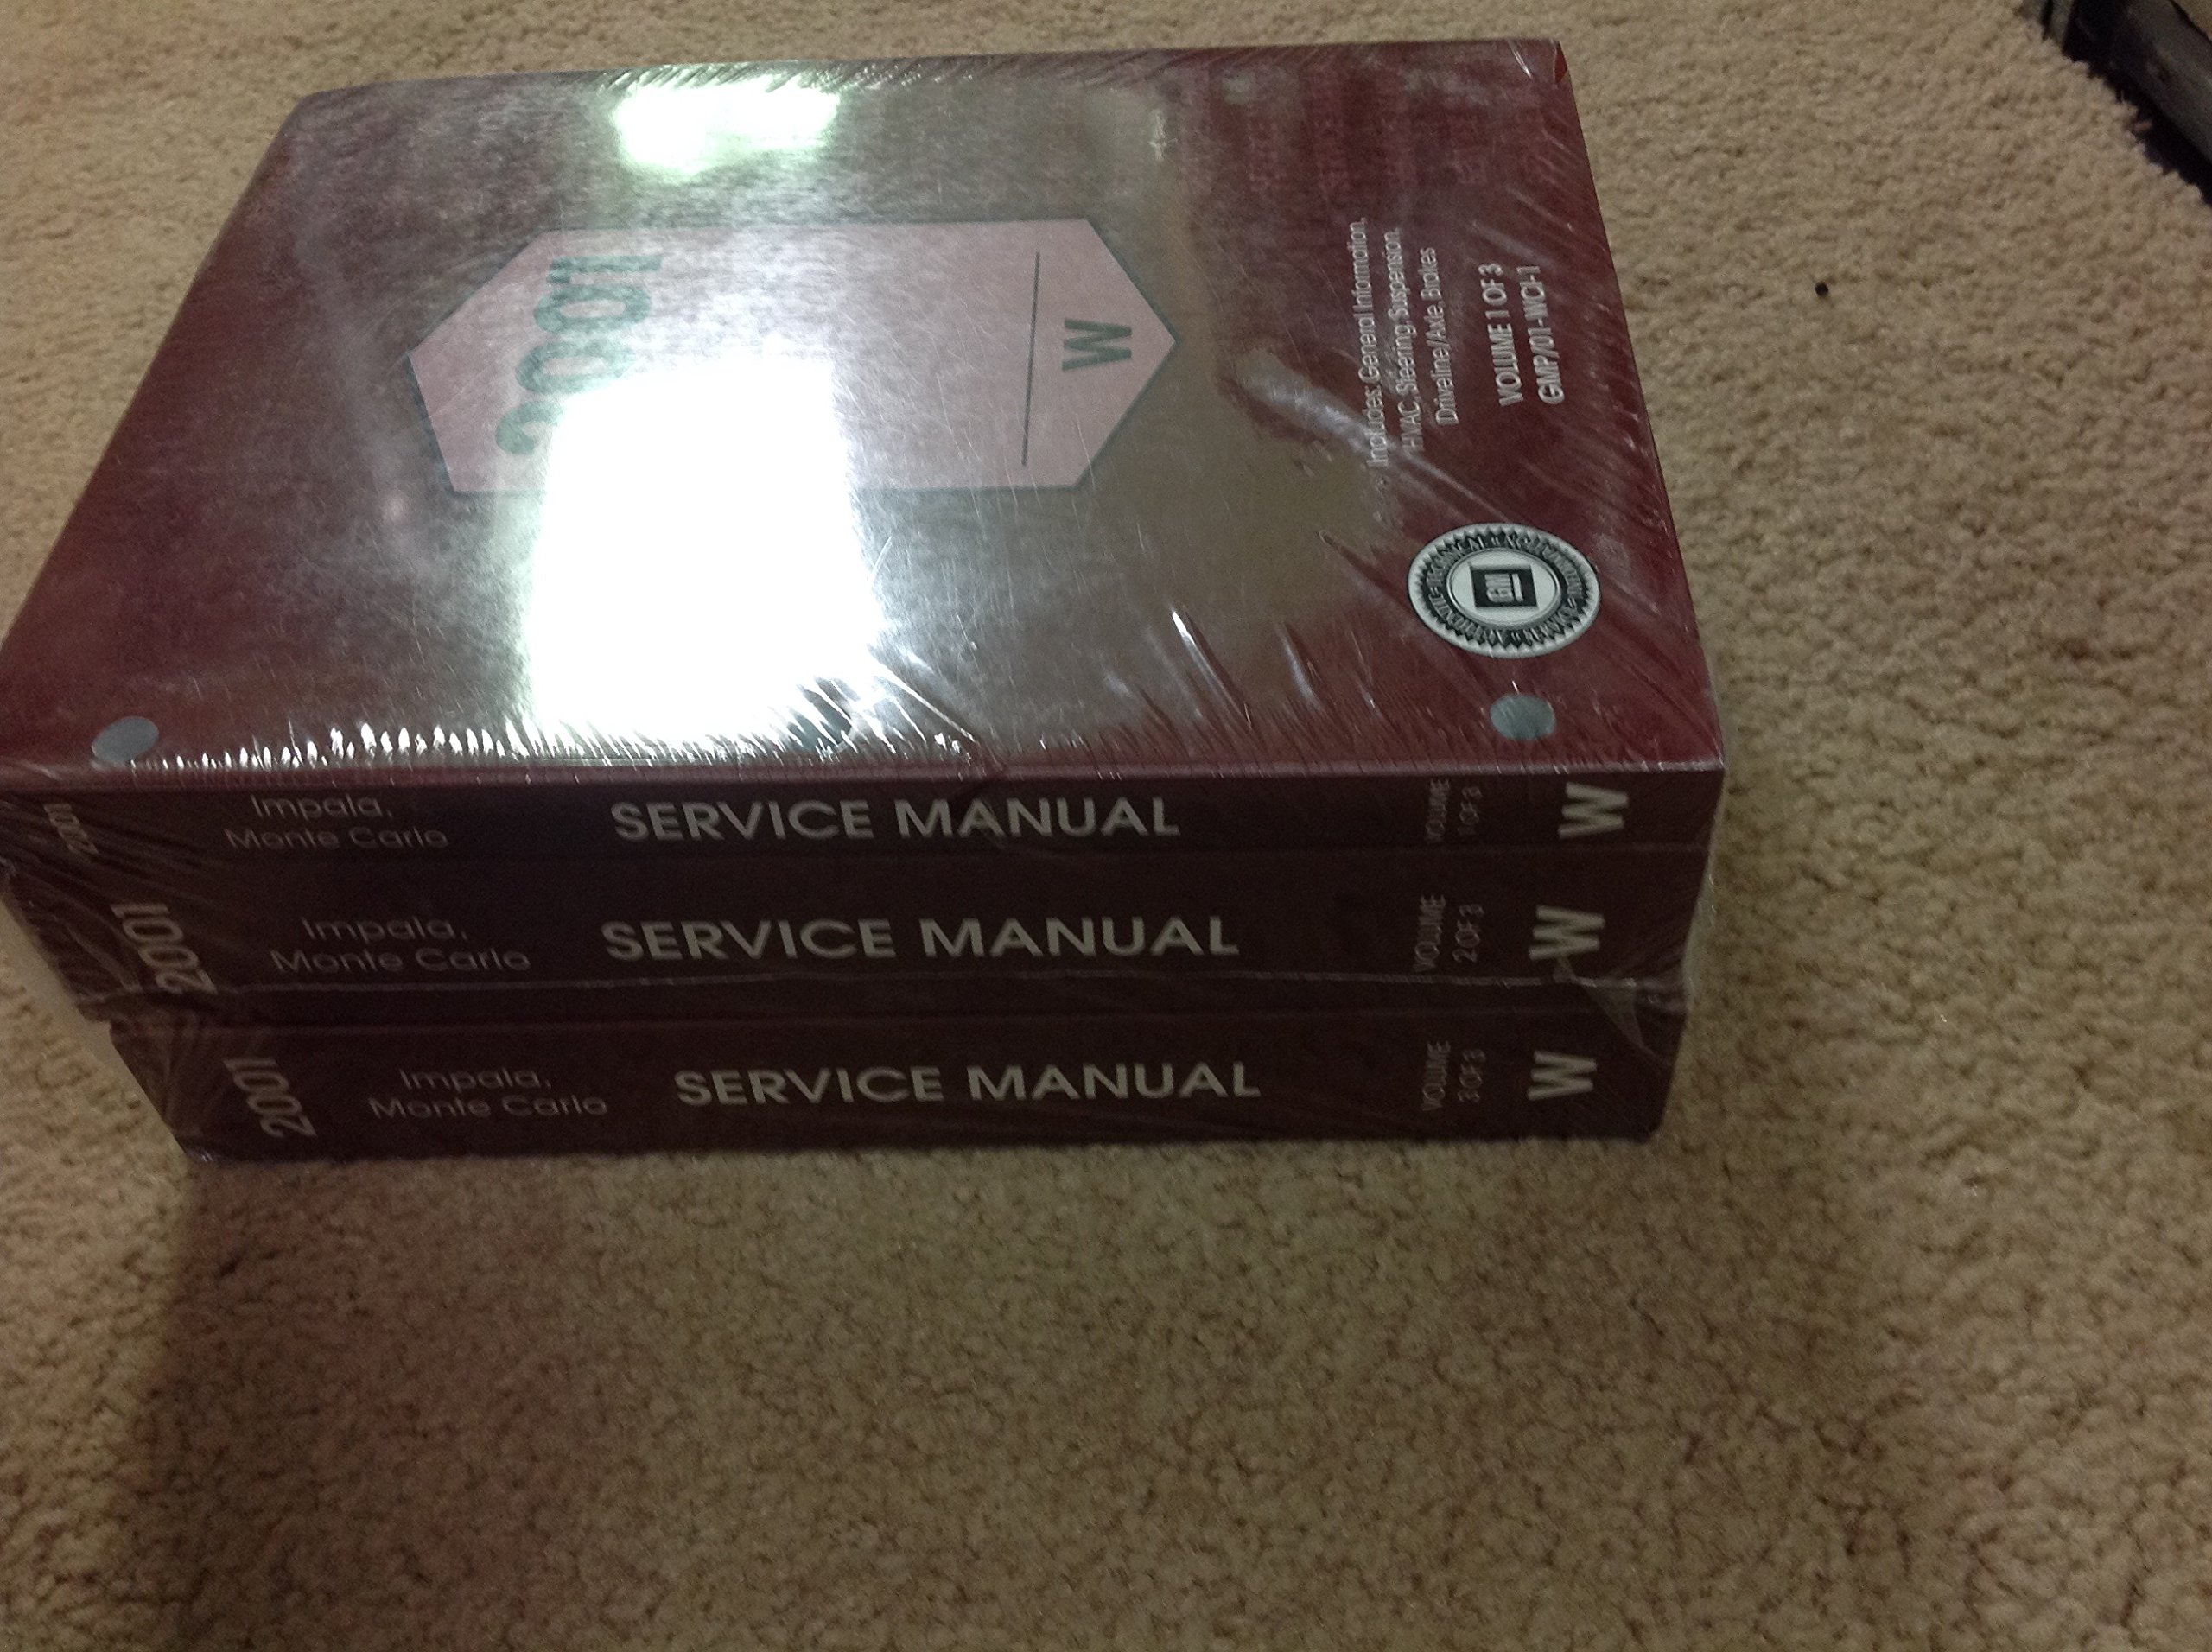 01 2001 Chevrolet Monte Carlo owners manual